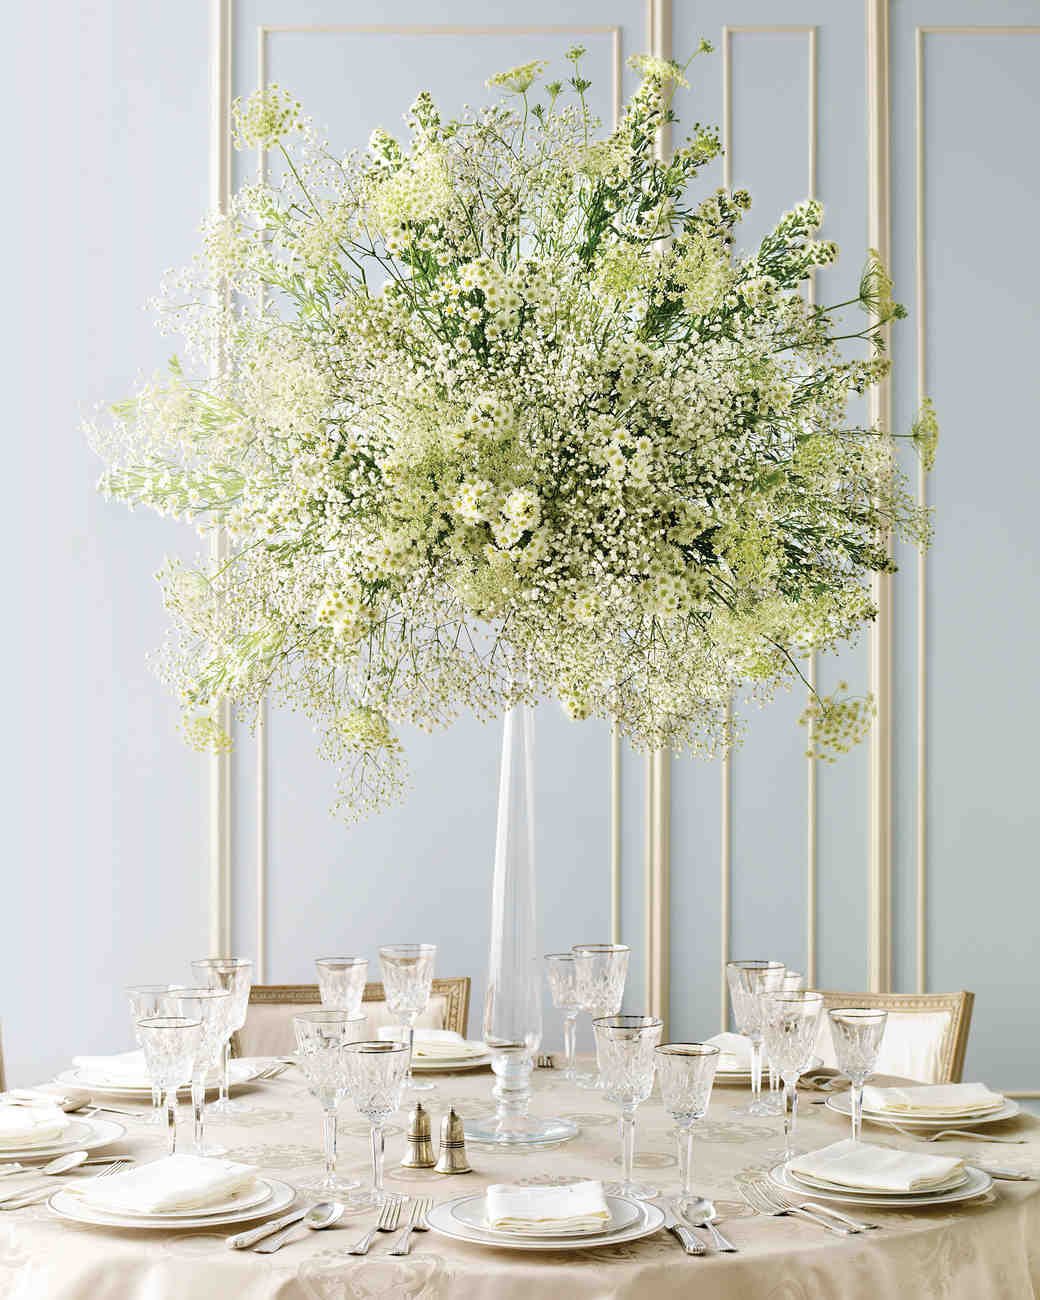 World Of Architecture 16 Simple Elegant And Affordable: Affordable Wedding Centerpieces That Don't Look Cheap